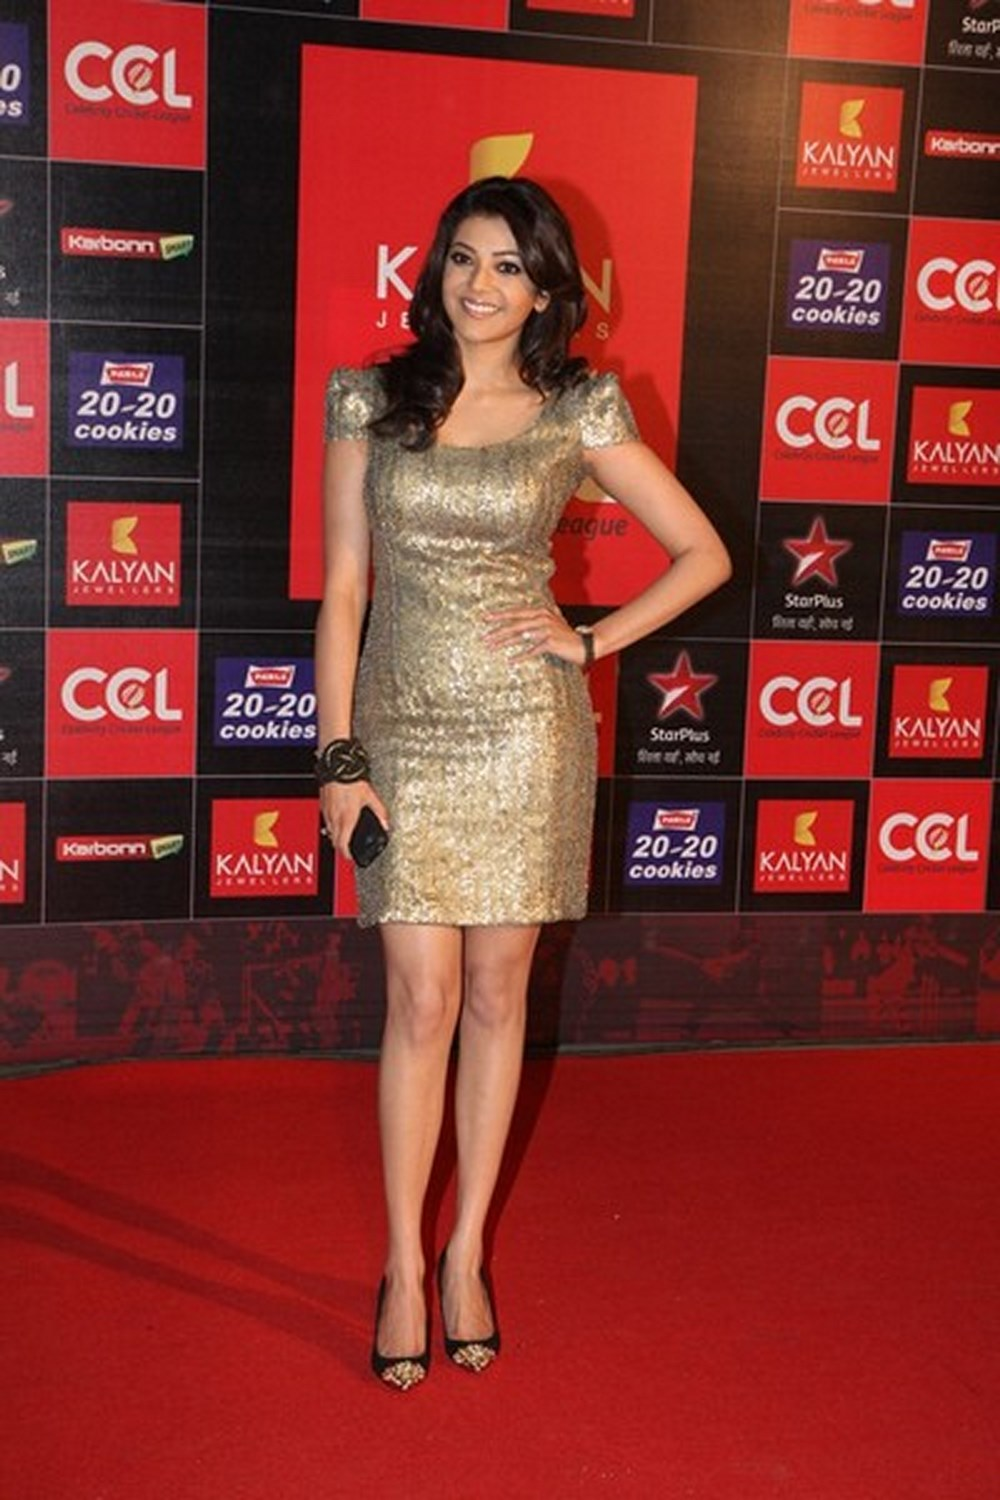 Kajal Agarwal Stills In Golden Mini Skirt At CCL Event